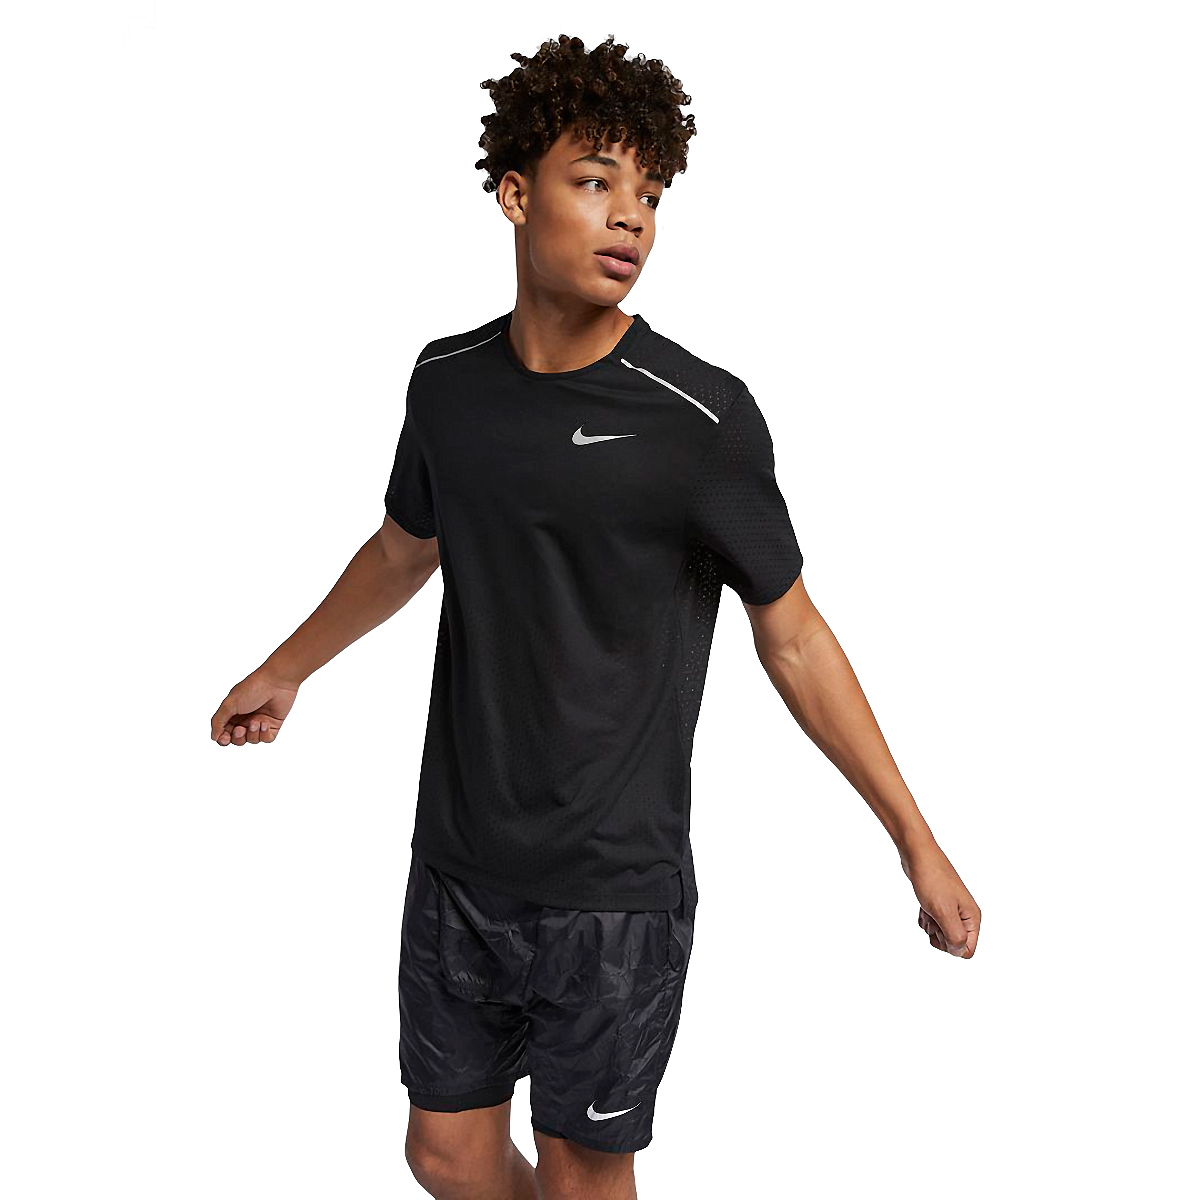 Men's Nike Breathe Rise 365 Short Sleeve  - Color: Black/Reflective - Size: S, Black/Reflective, large, image 1